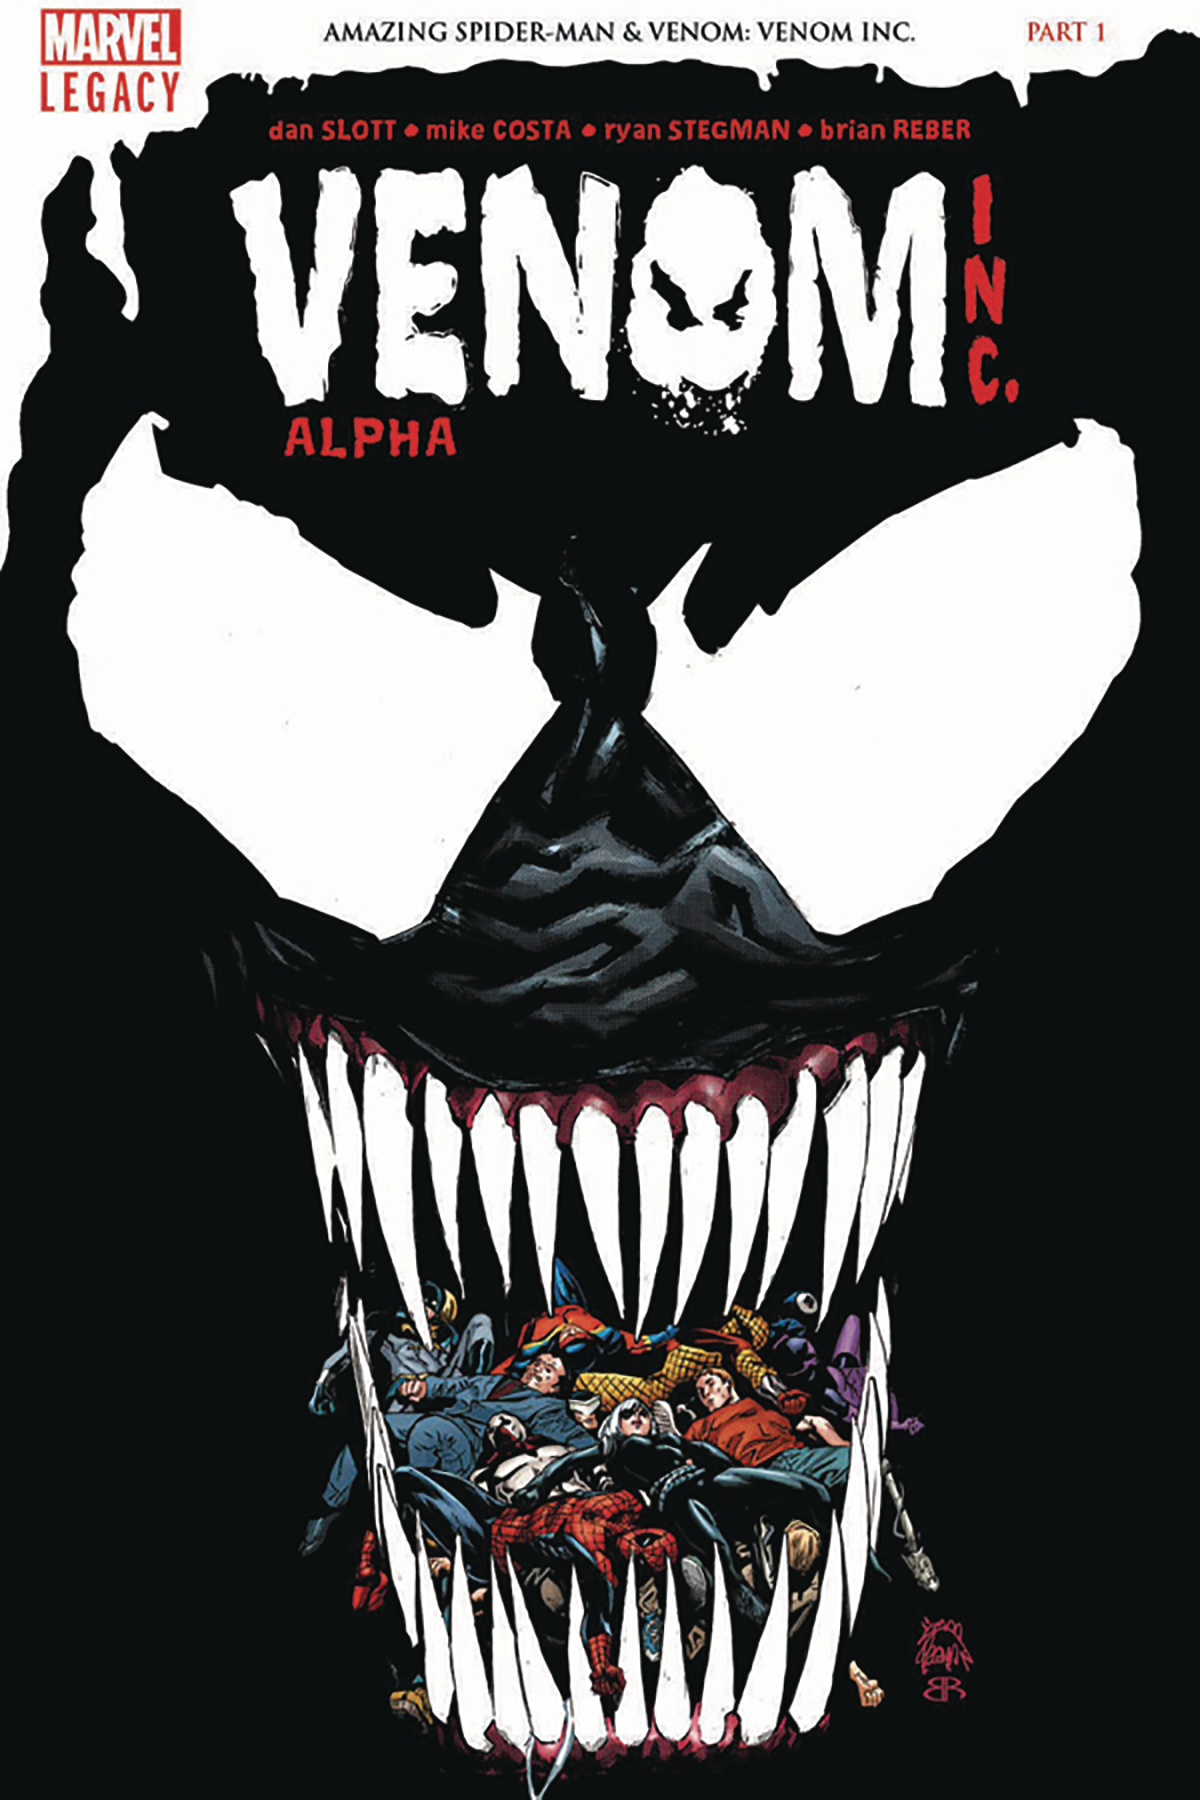 DF AMAZING SPIDER-MAN VENOM INC ALPHA #1 ROMITA SGN